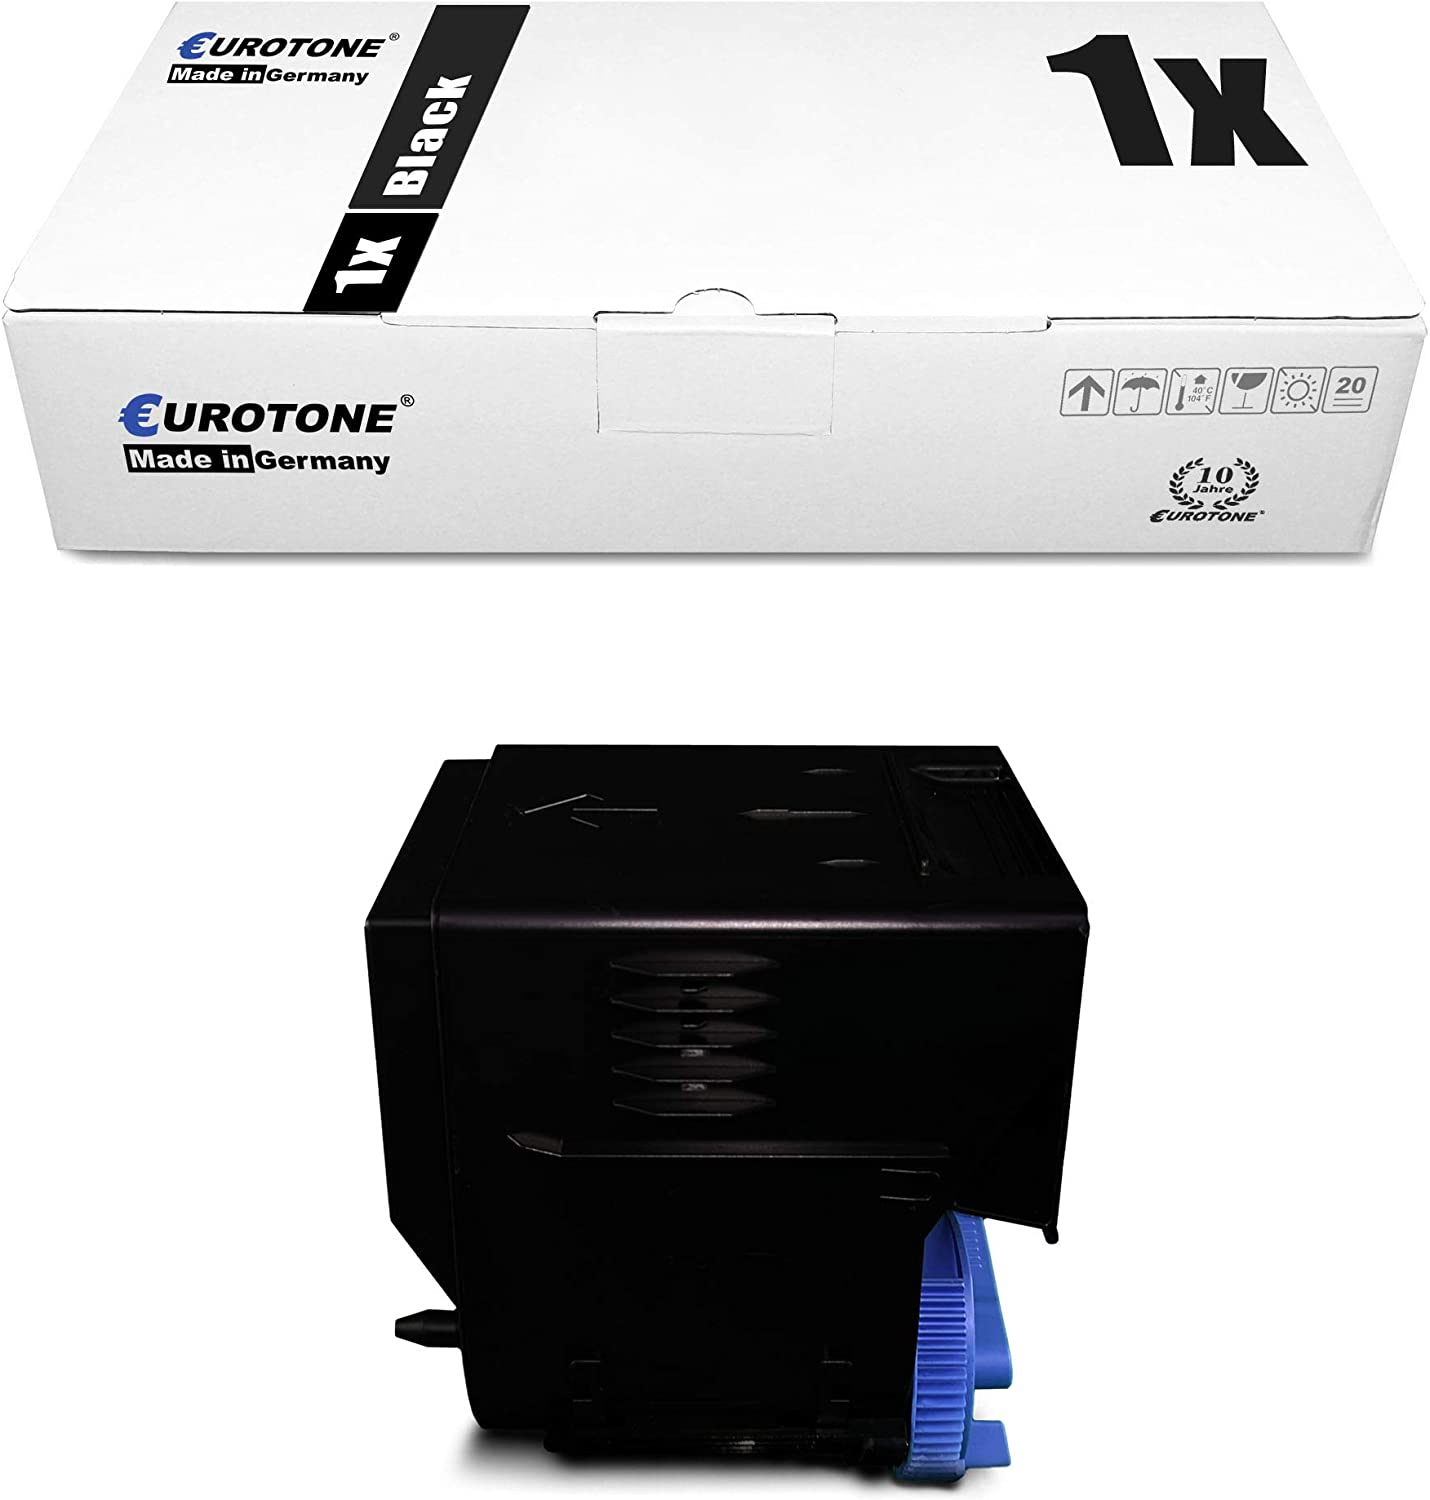 8X Eurotone Toner for Canon Imagerunner C 2380 2880 3080 3380 3580 V Ne i 2 Replaces C-EXV 21